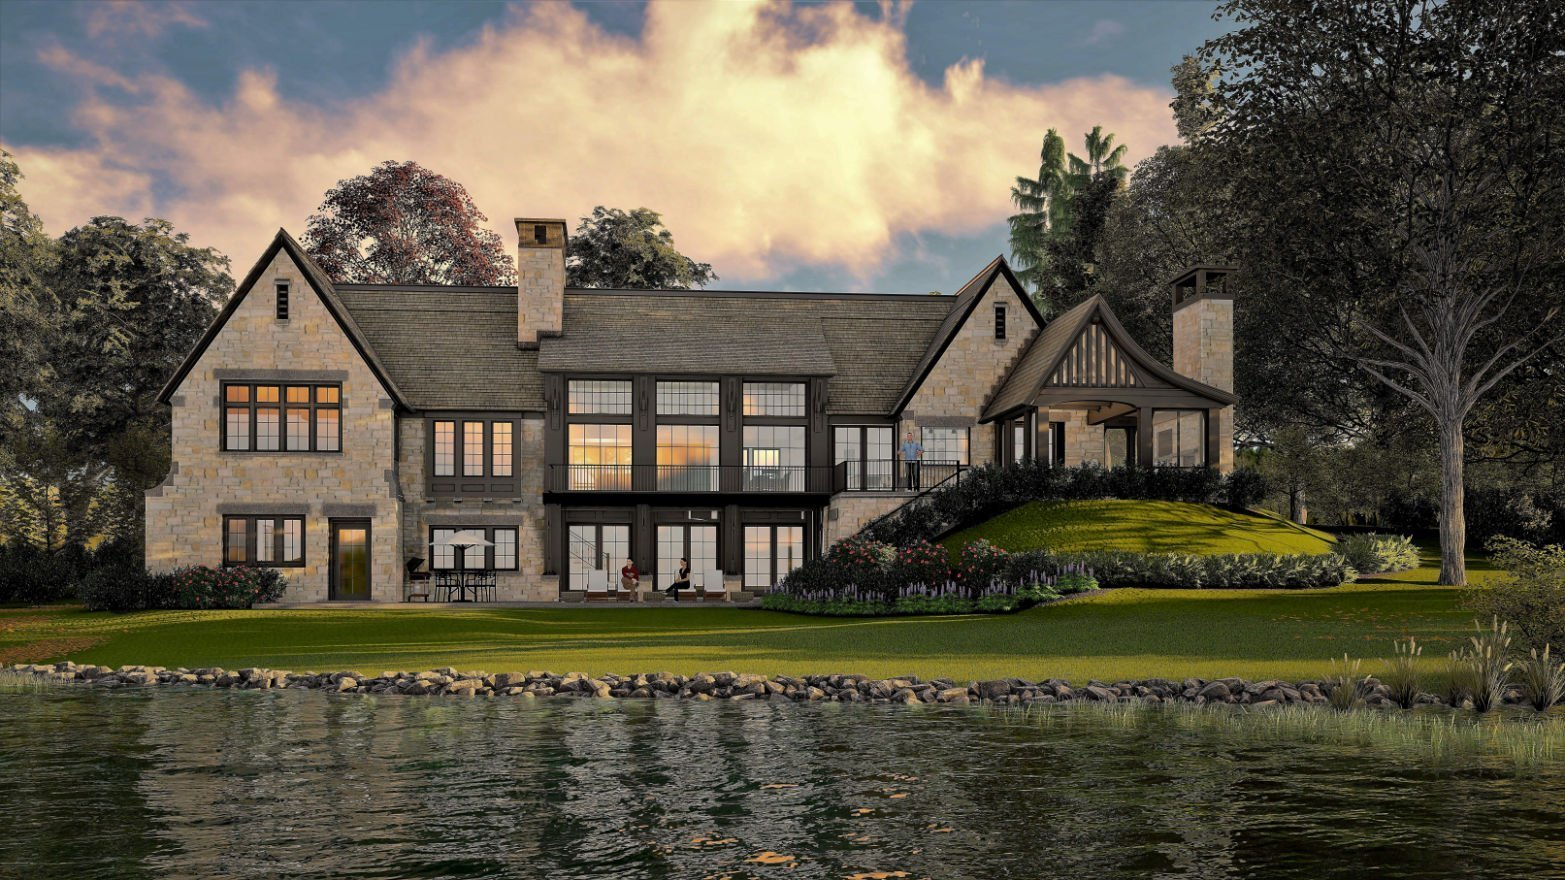 Lakeside Cottage rendering